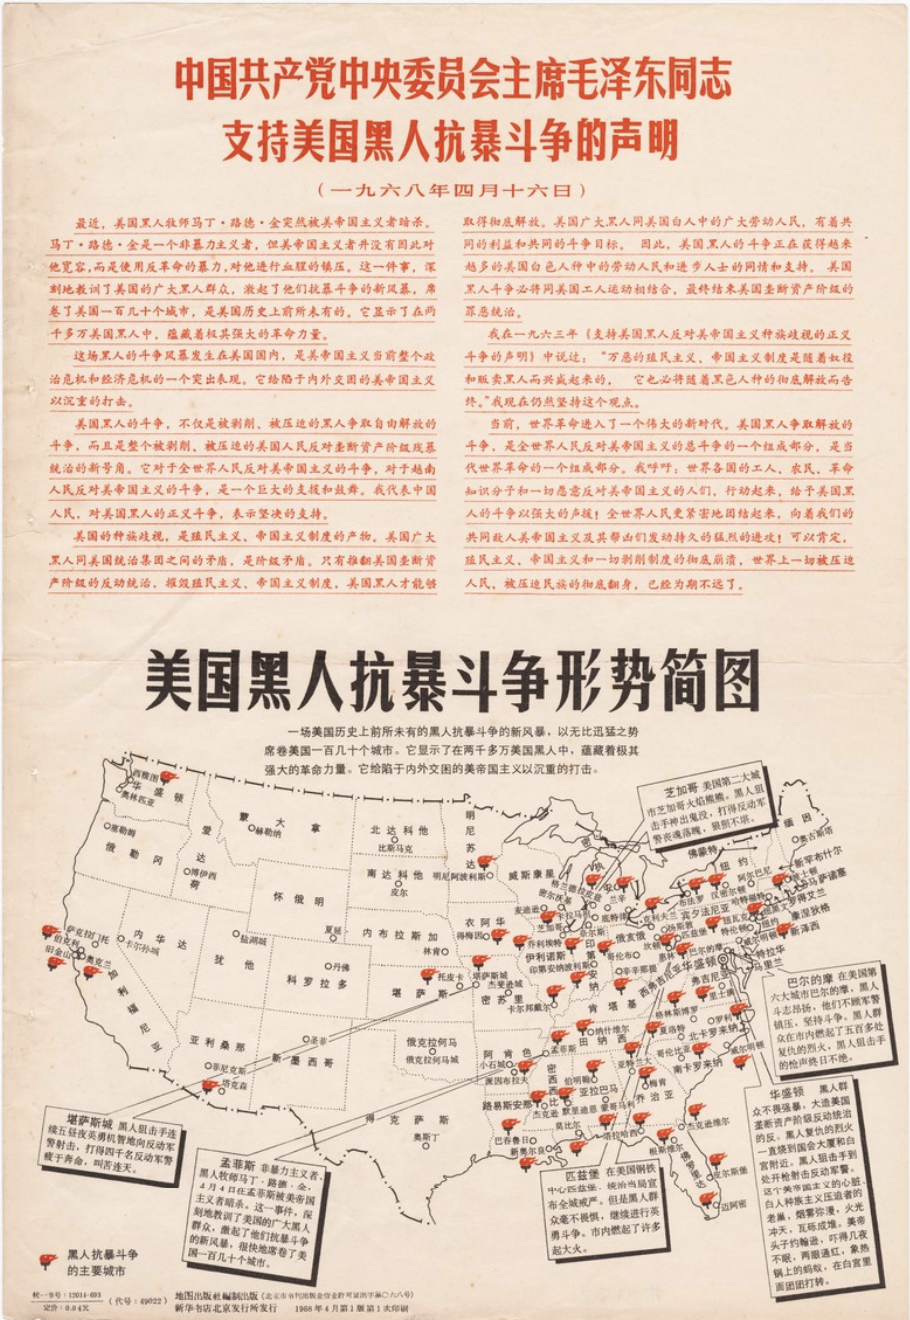 broadside of chinese writing condemning US Imperialism against african americans